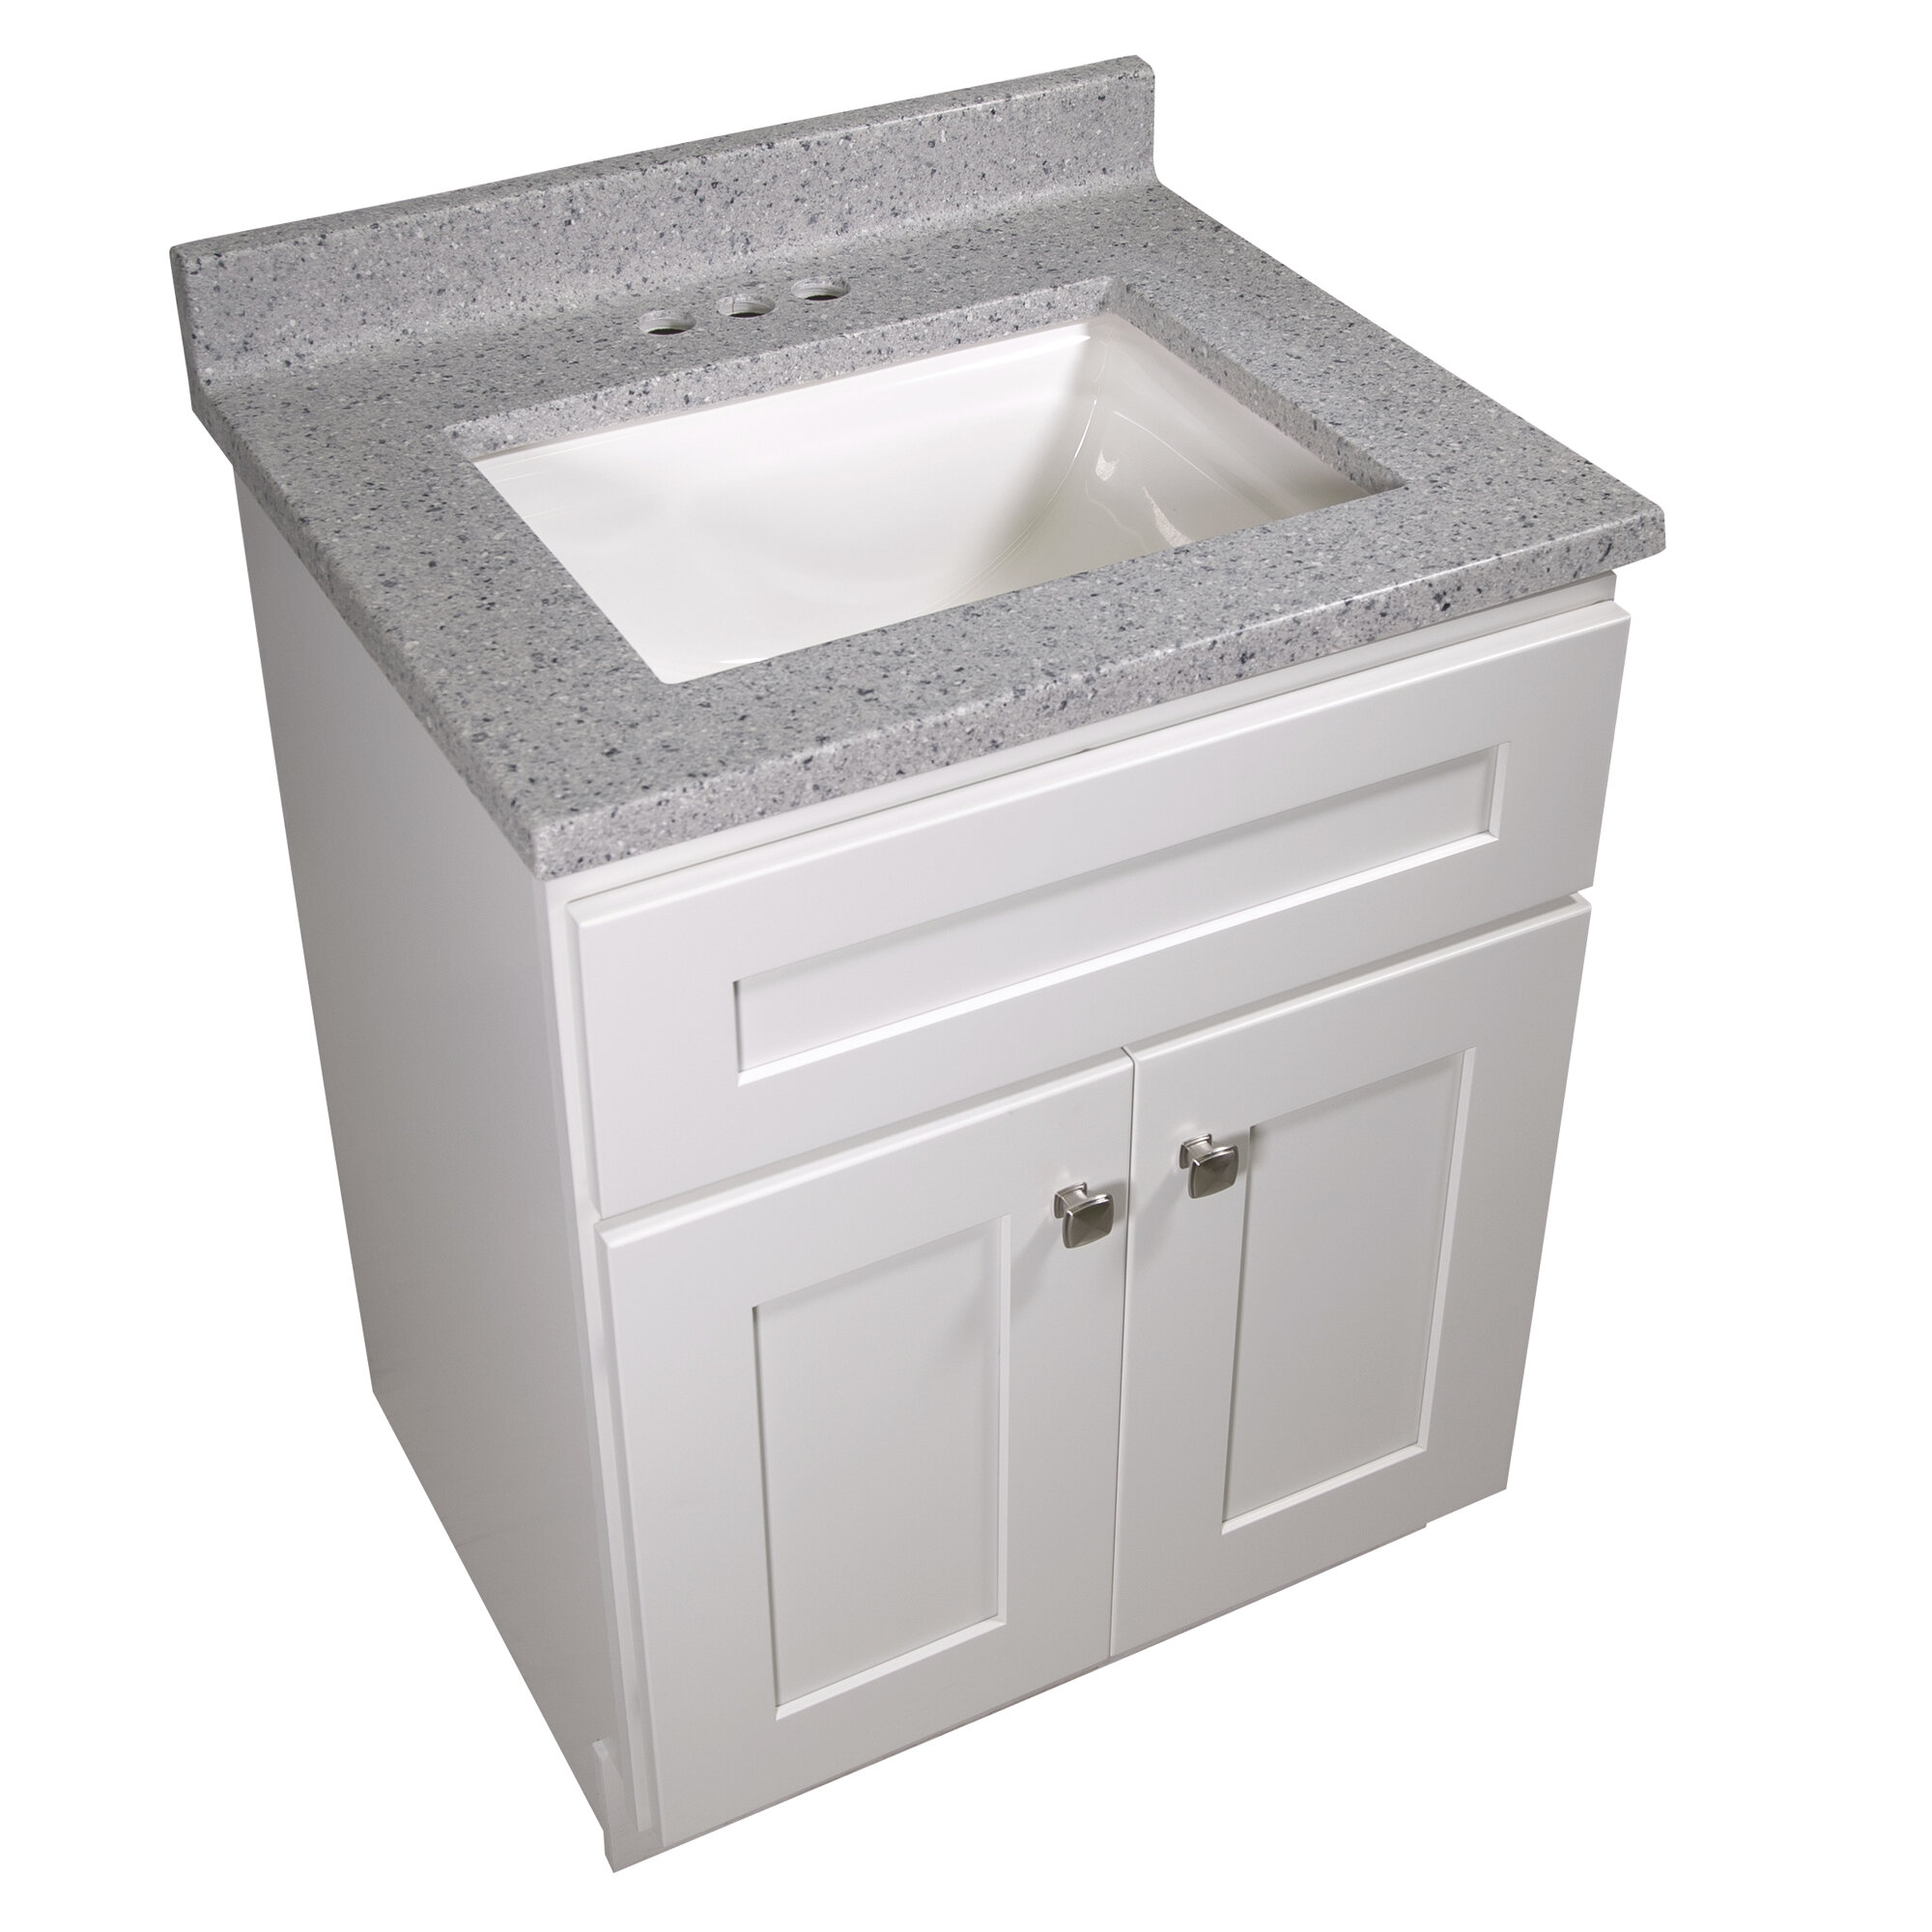 Design House 25 In W Cultured Marble Vanity Top In Moonscape Grey With Solid White Basin And 4 In Faucet Spread Wayfair